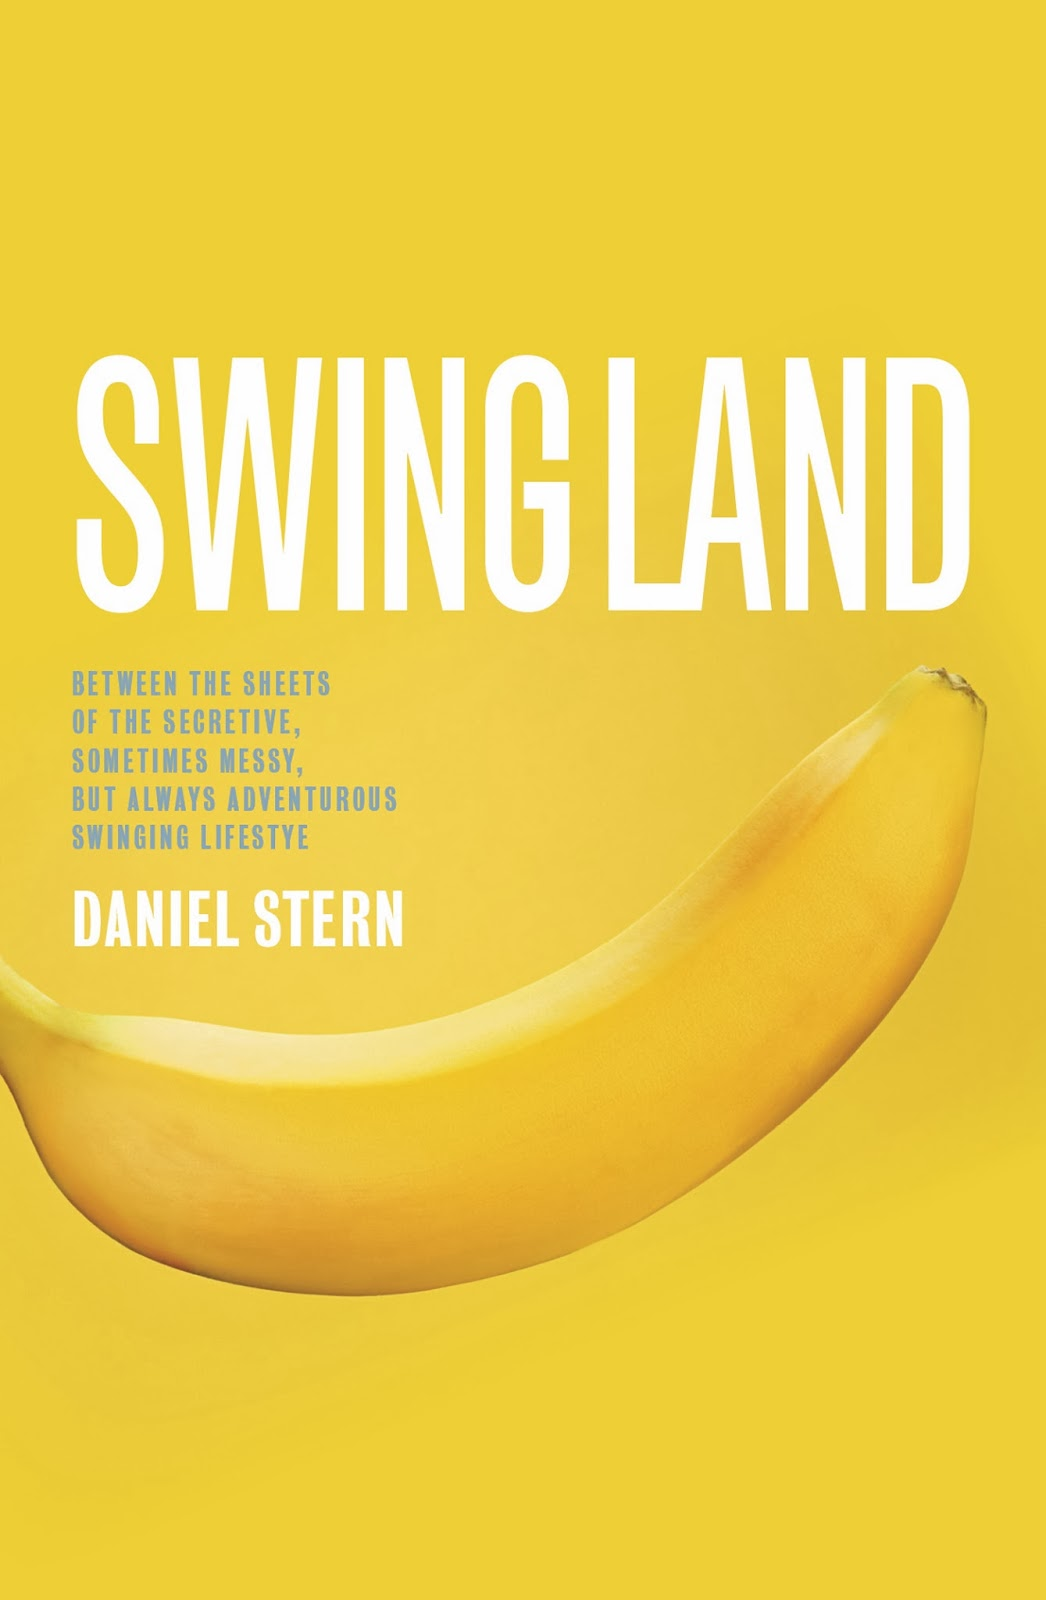 http://www.blackincbooks.com/books/swingland